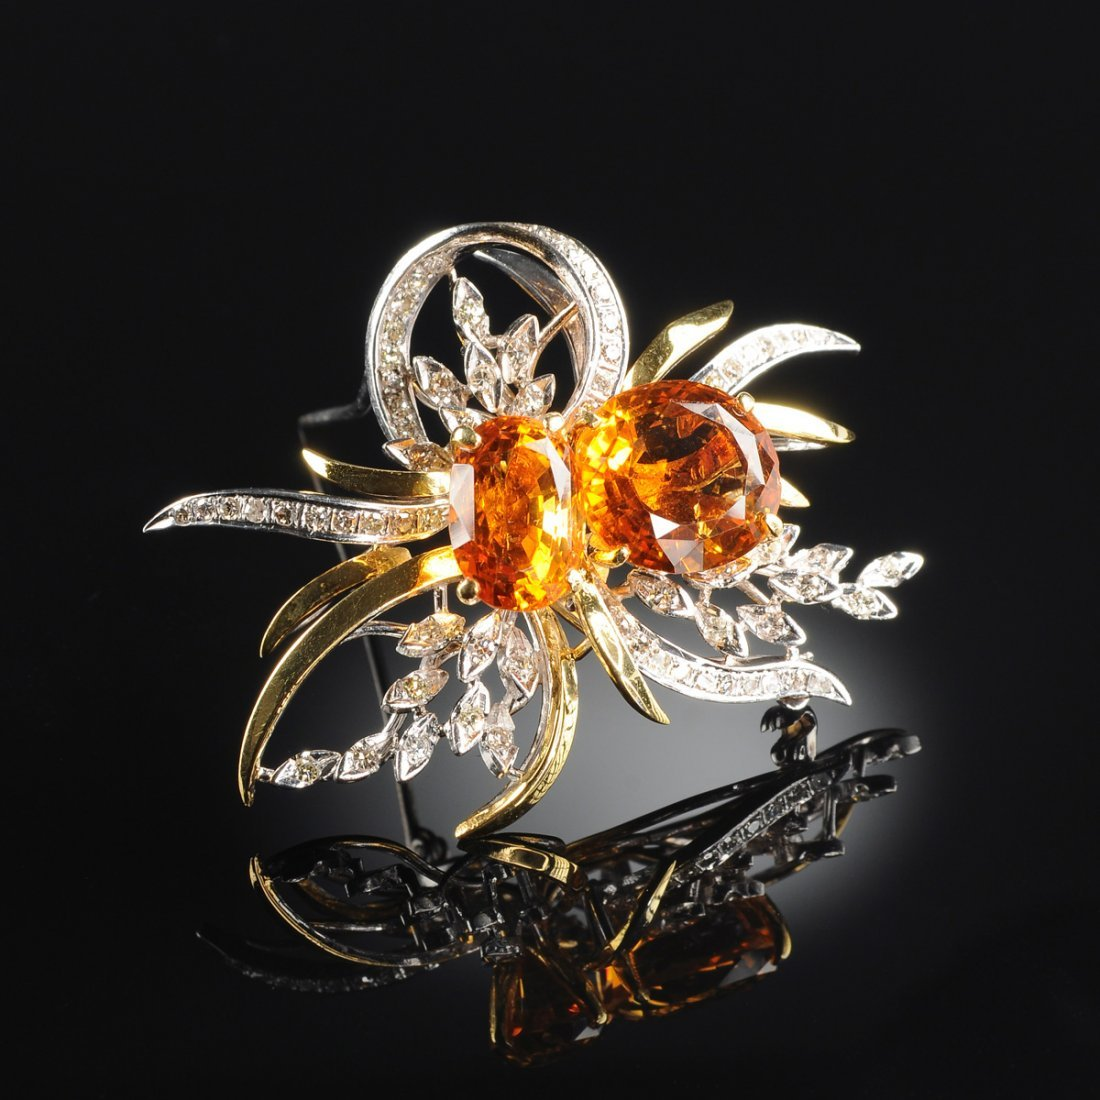 A 14K YELLOW GOLD, WHITE GOLD, AND CITRINE QUARTZ AND